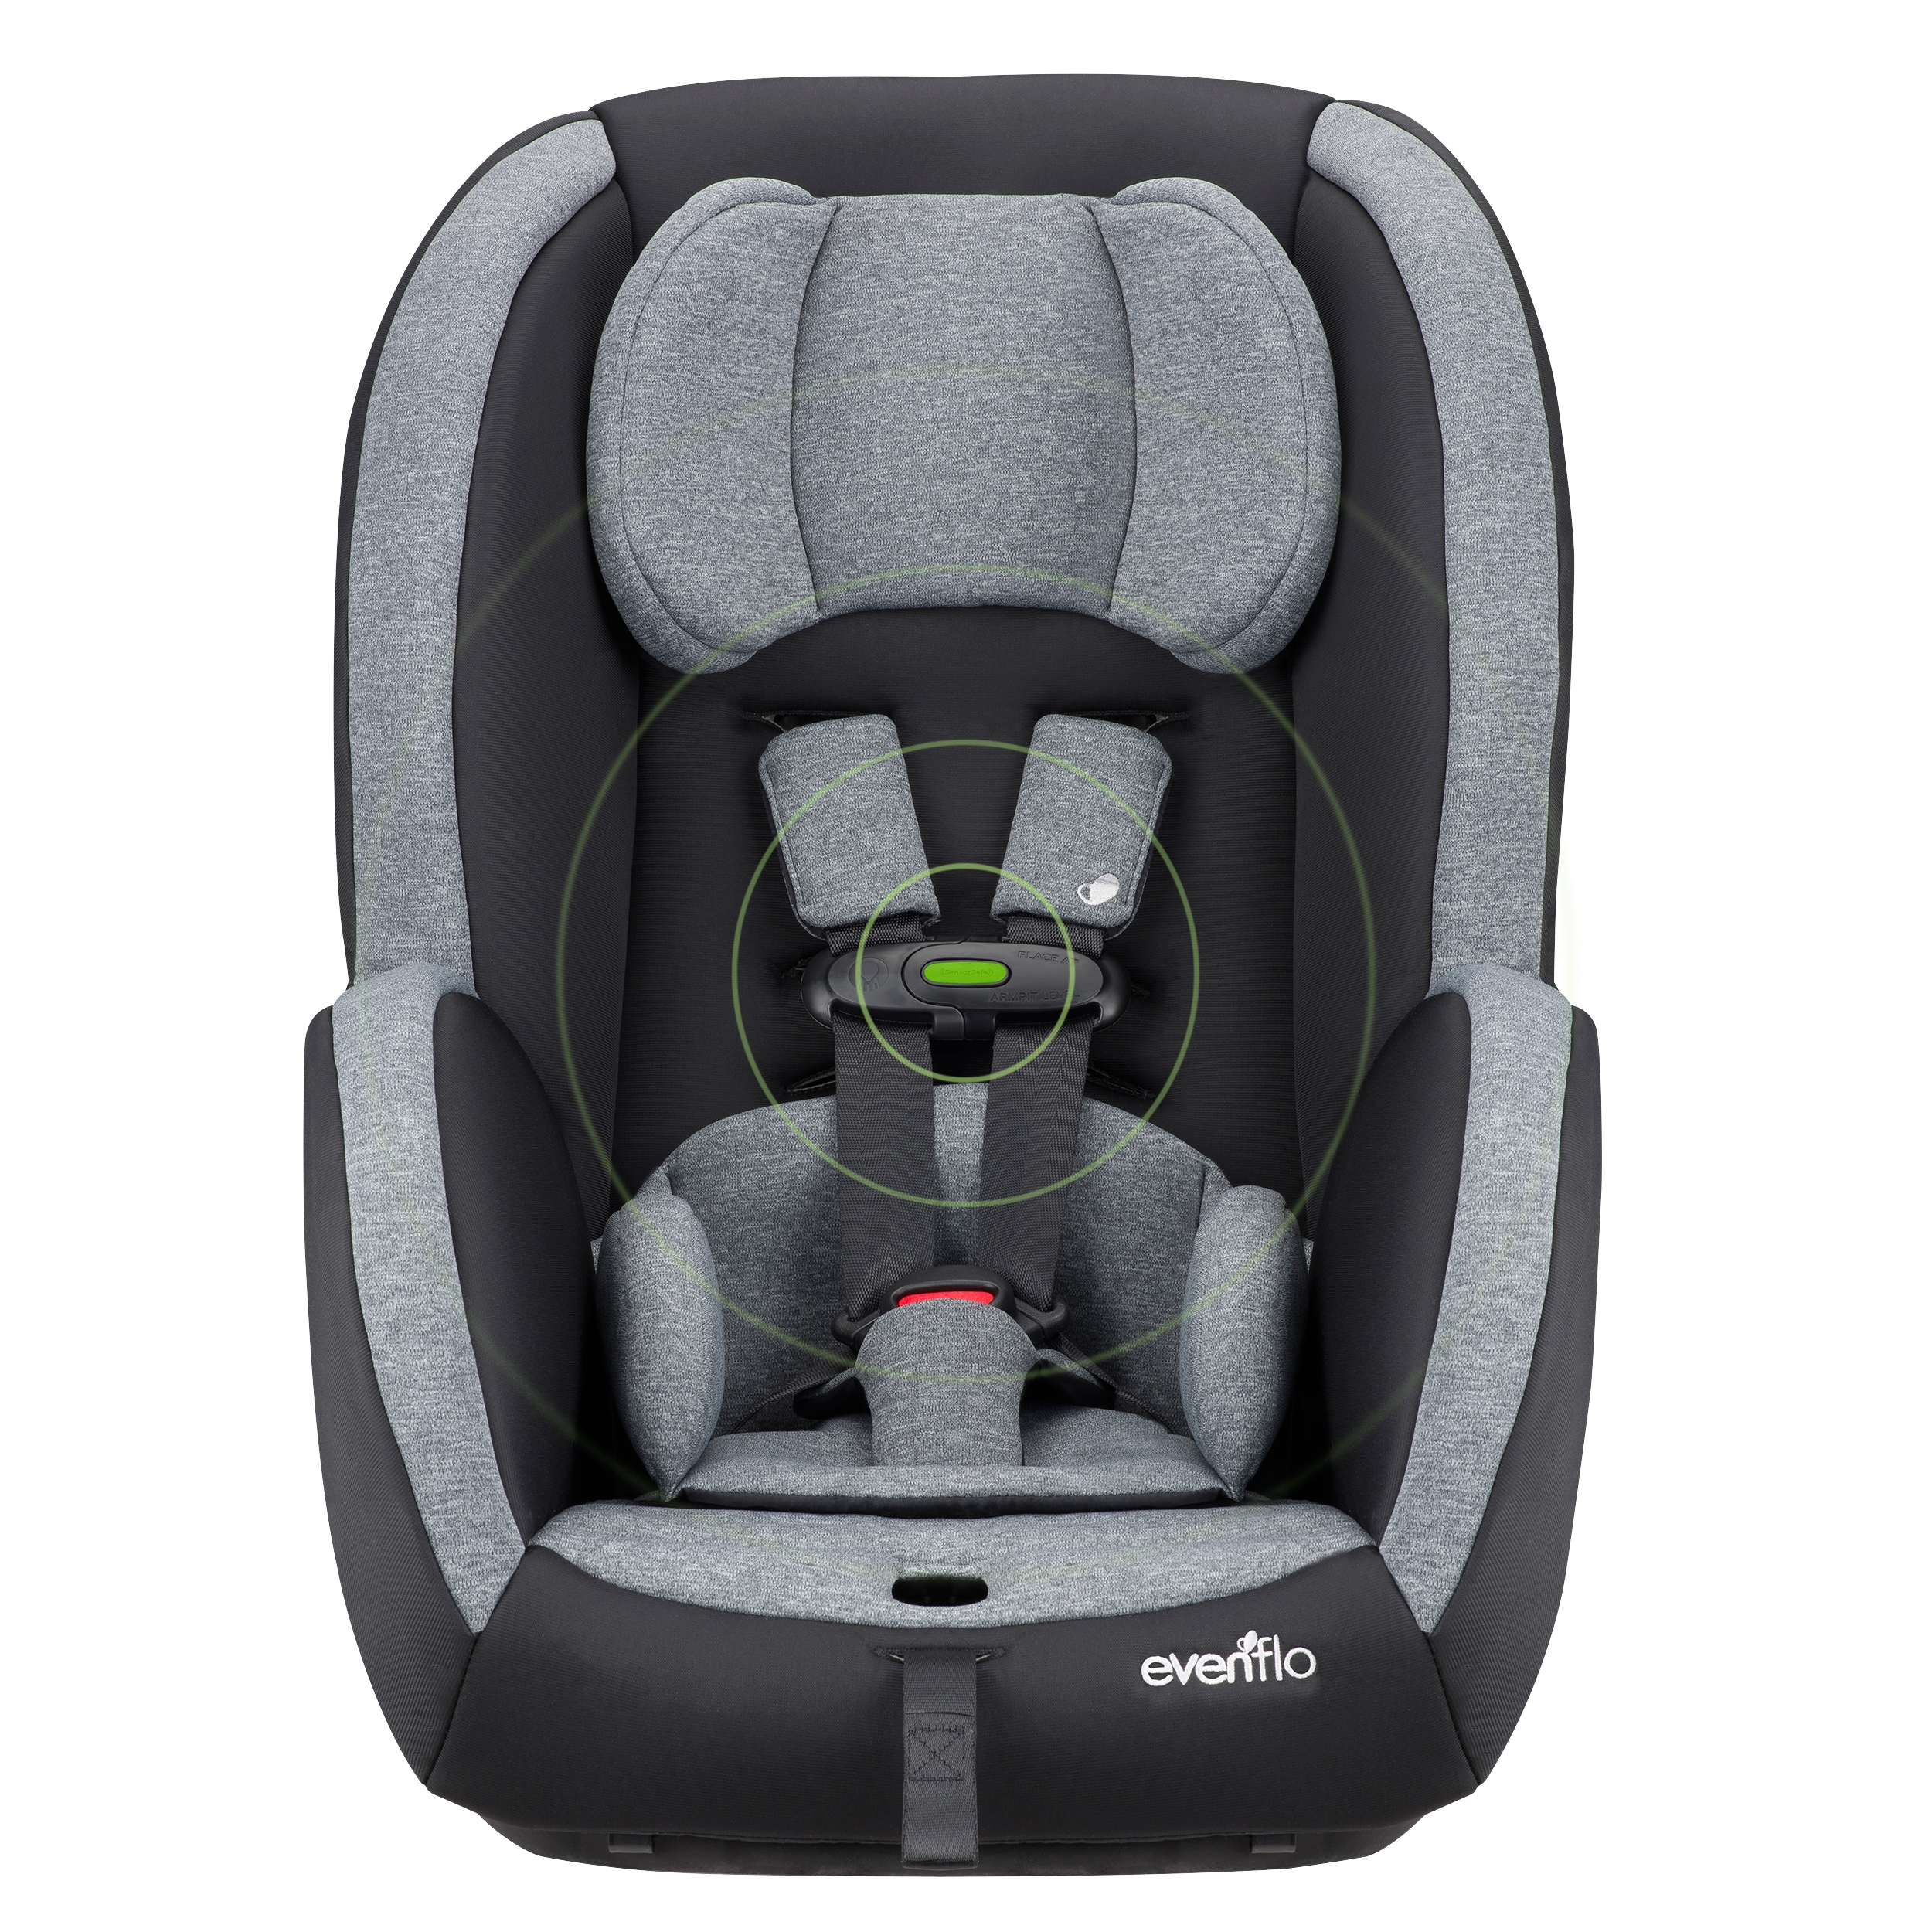 medium resolution of walmart and evenflo buckle up for safety and introduce new sensorsafe titan convertible car seat business wire